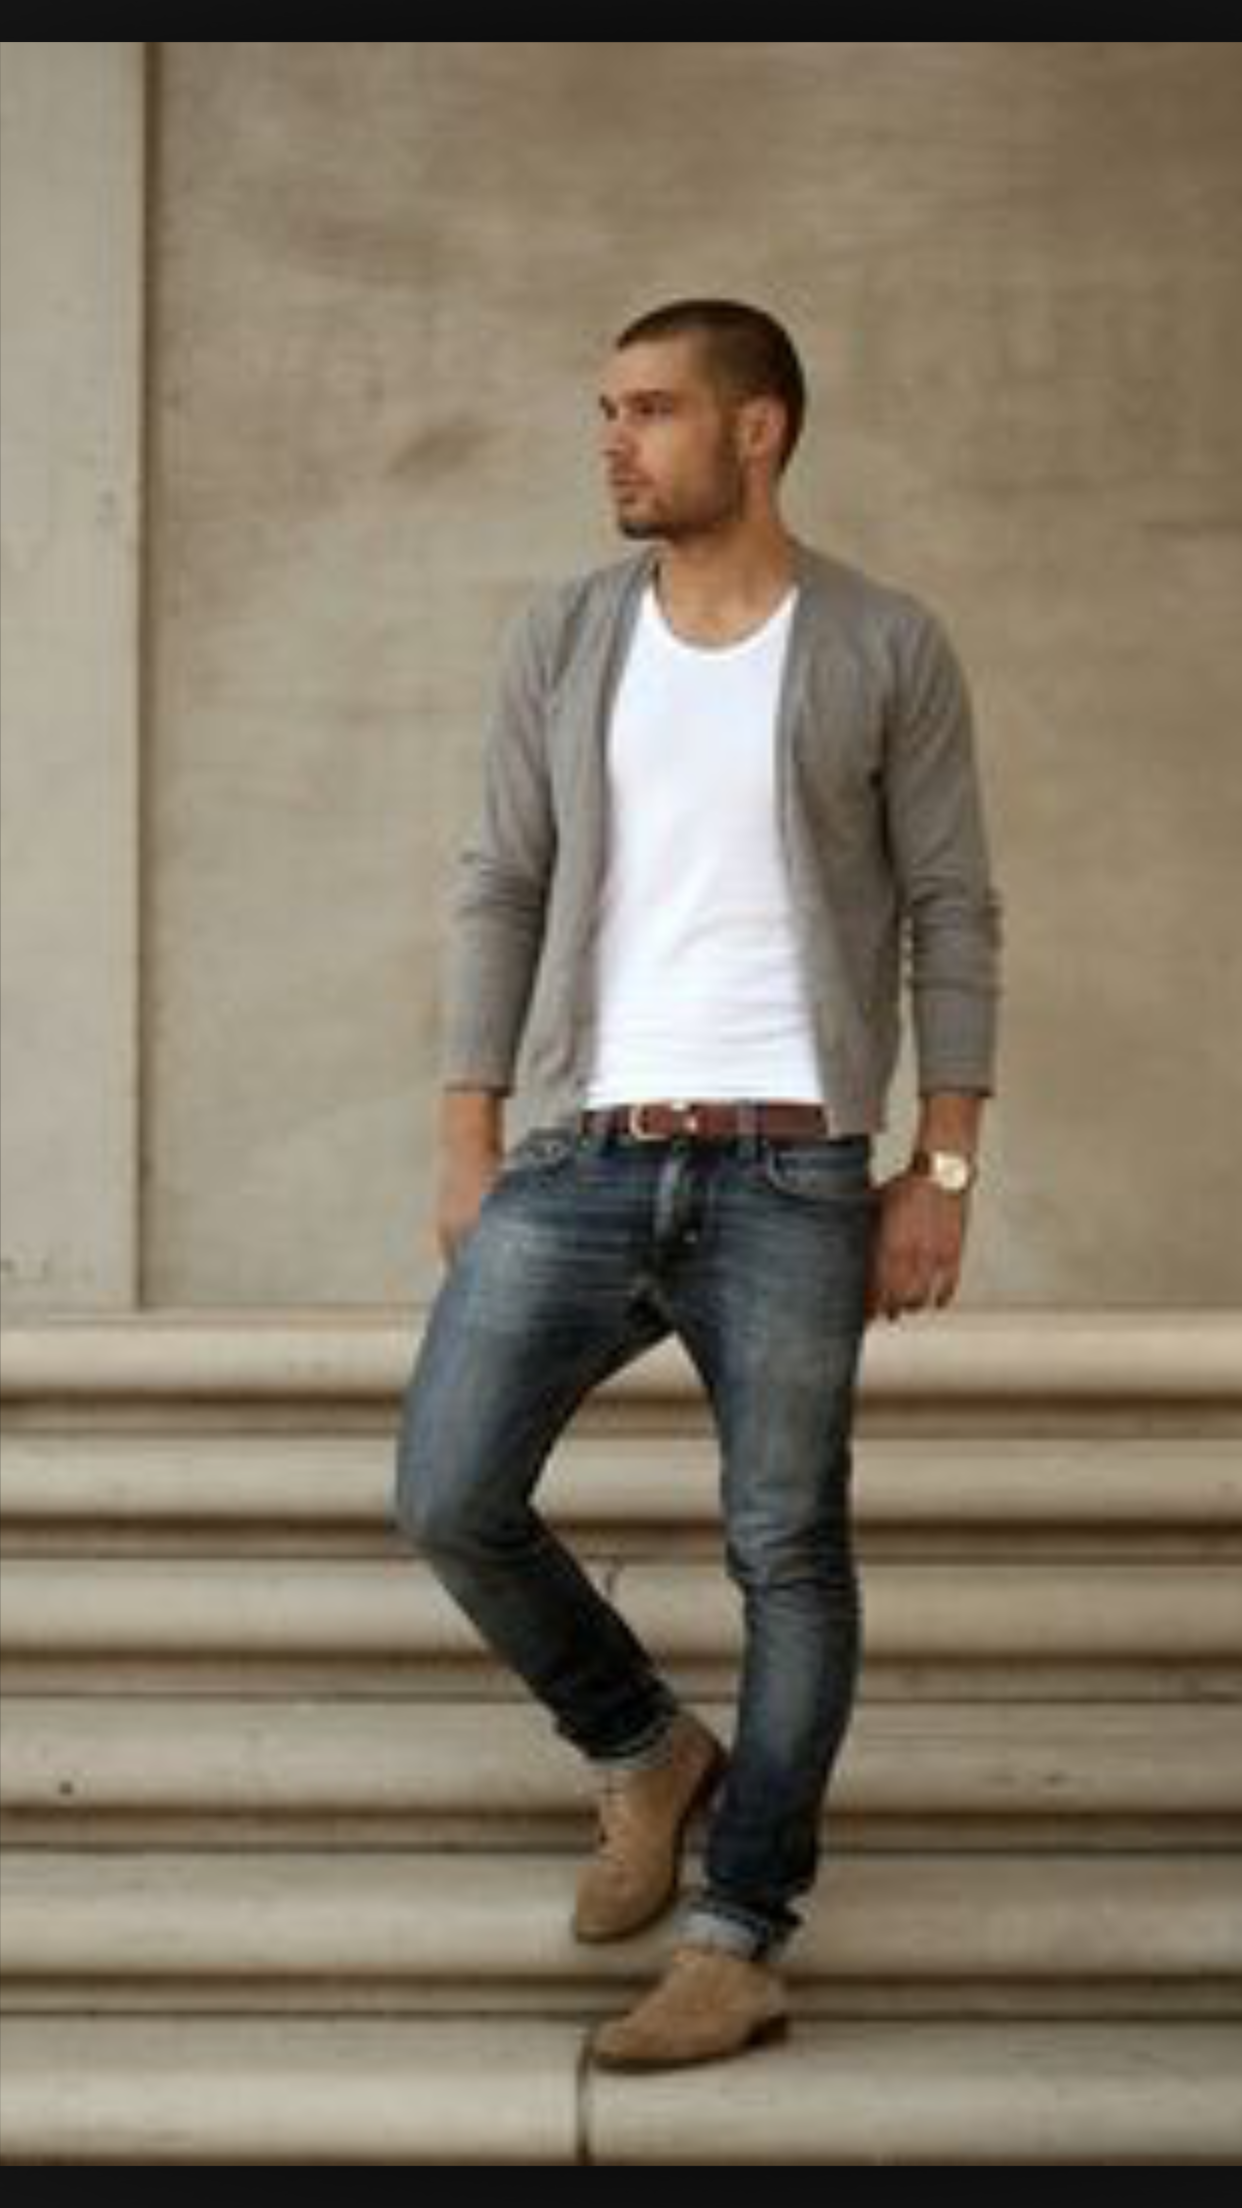 Pin by A.R.M on Look | Pinterest | Men's fashion, Fashion and Man ...